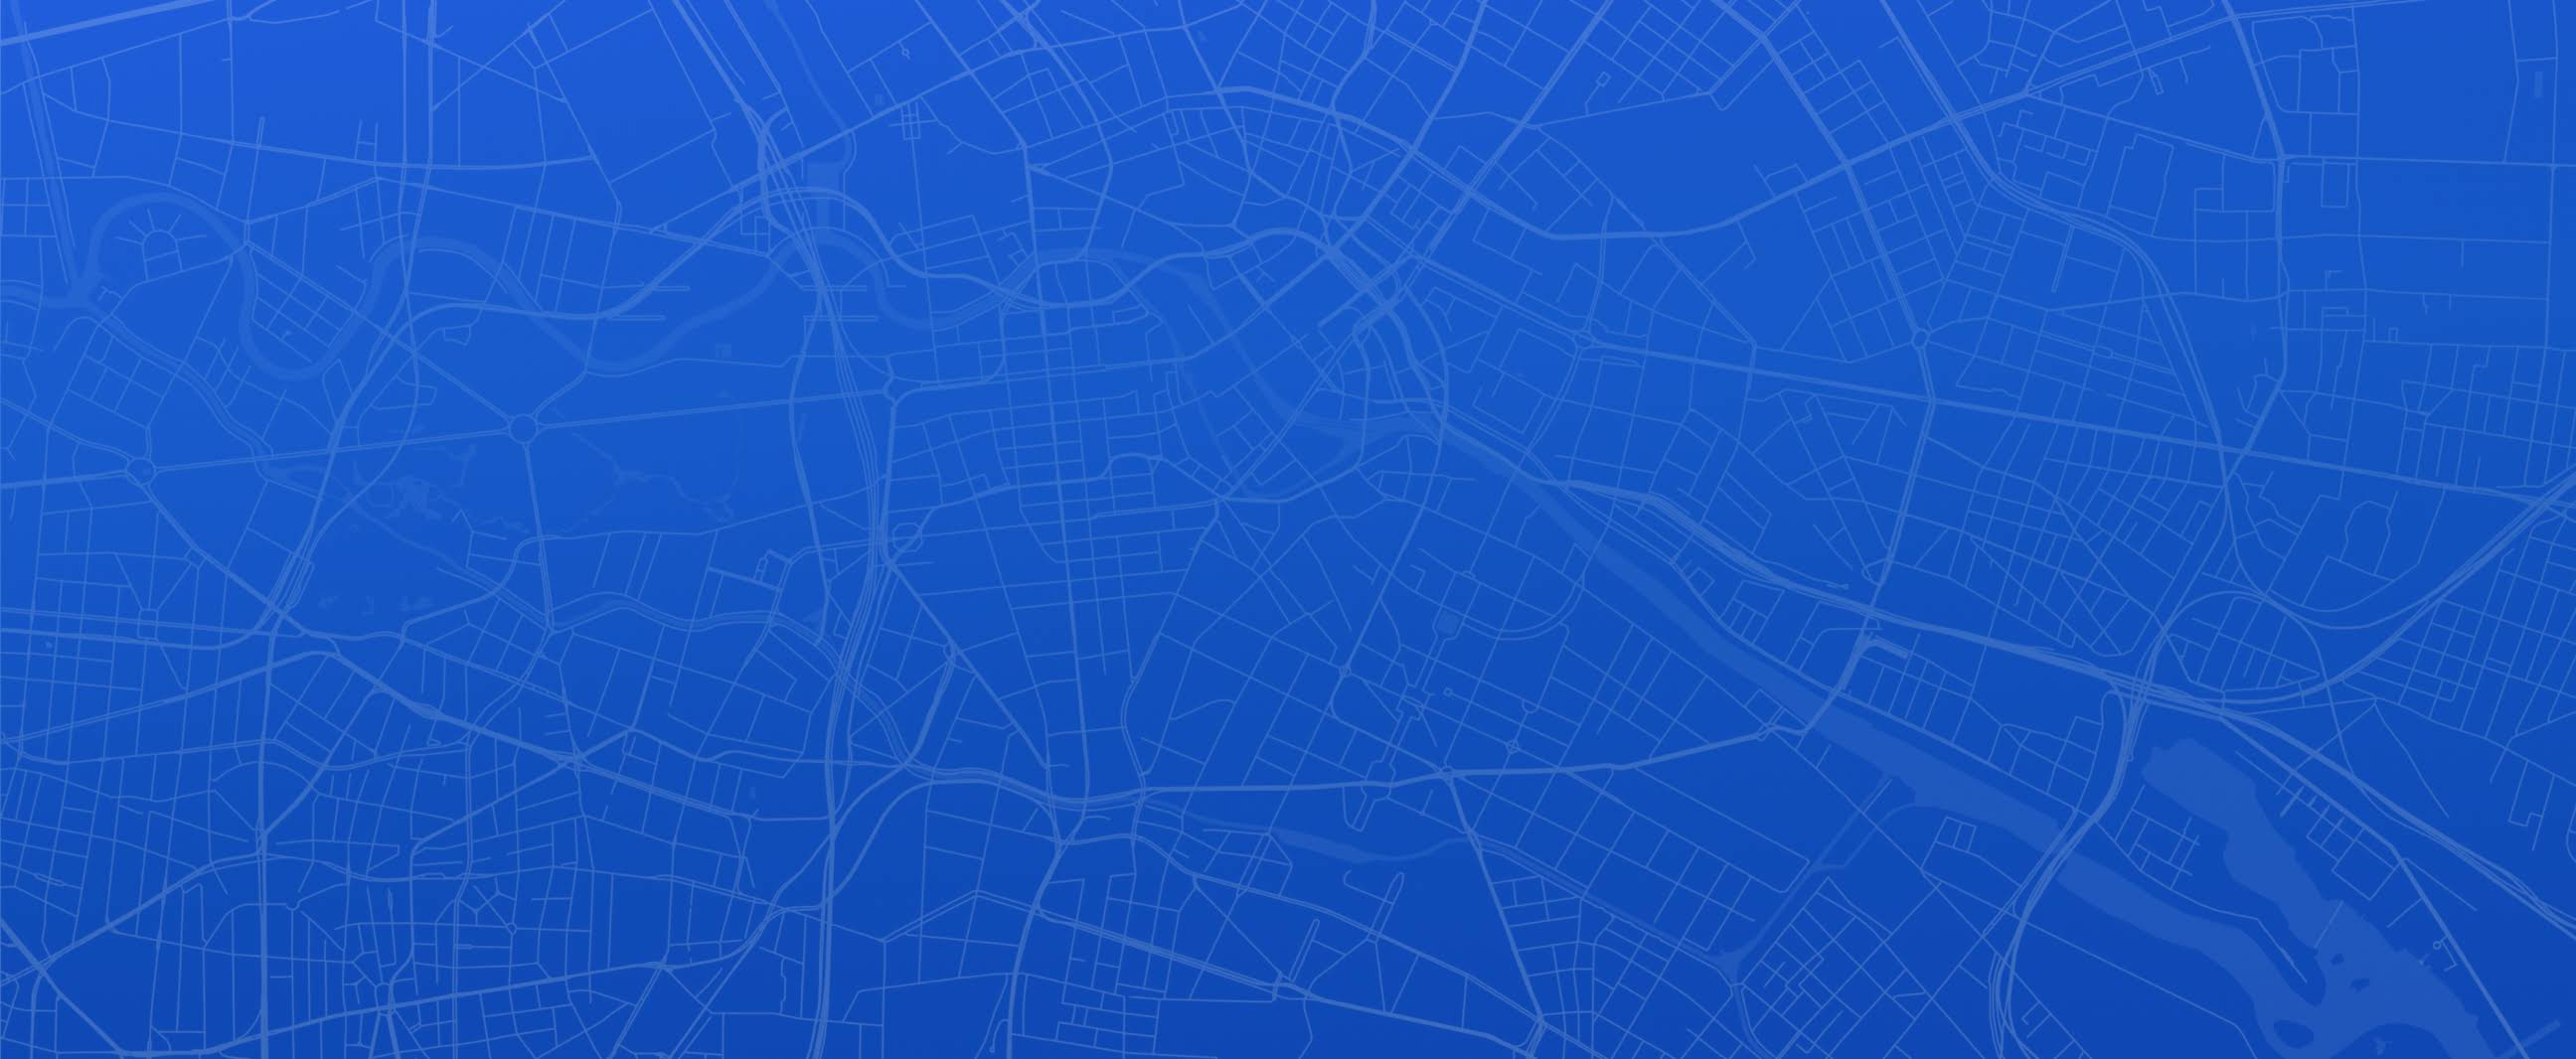 Blue and white map of city